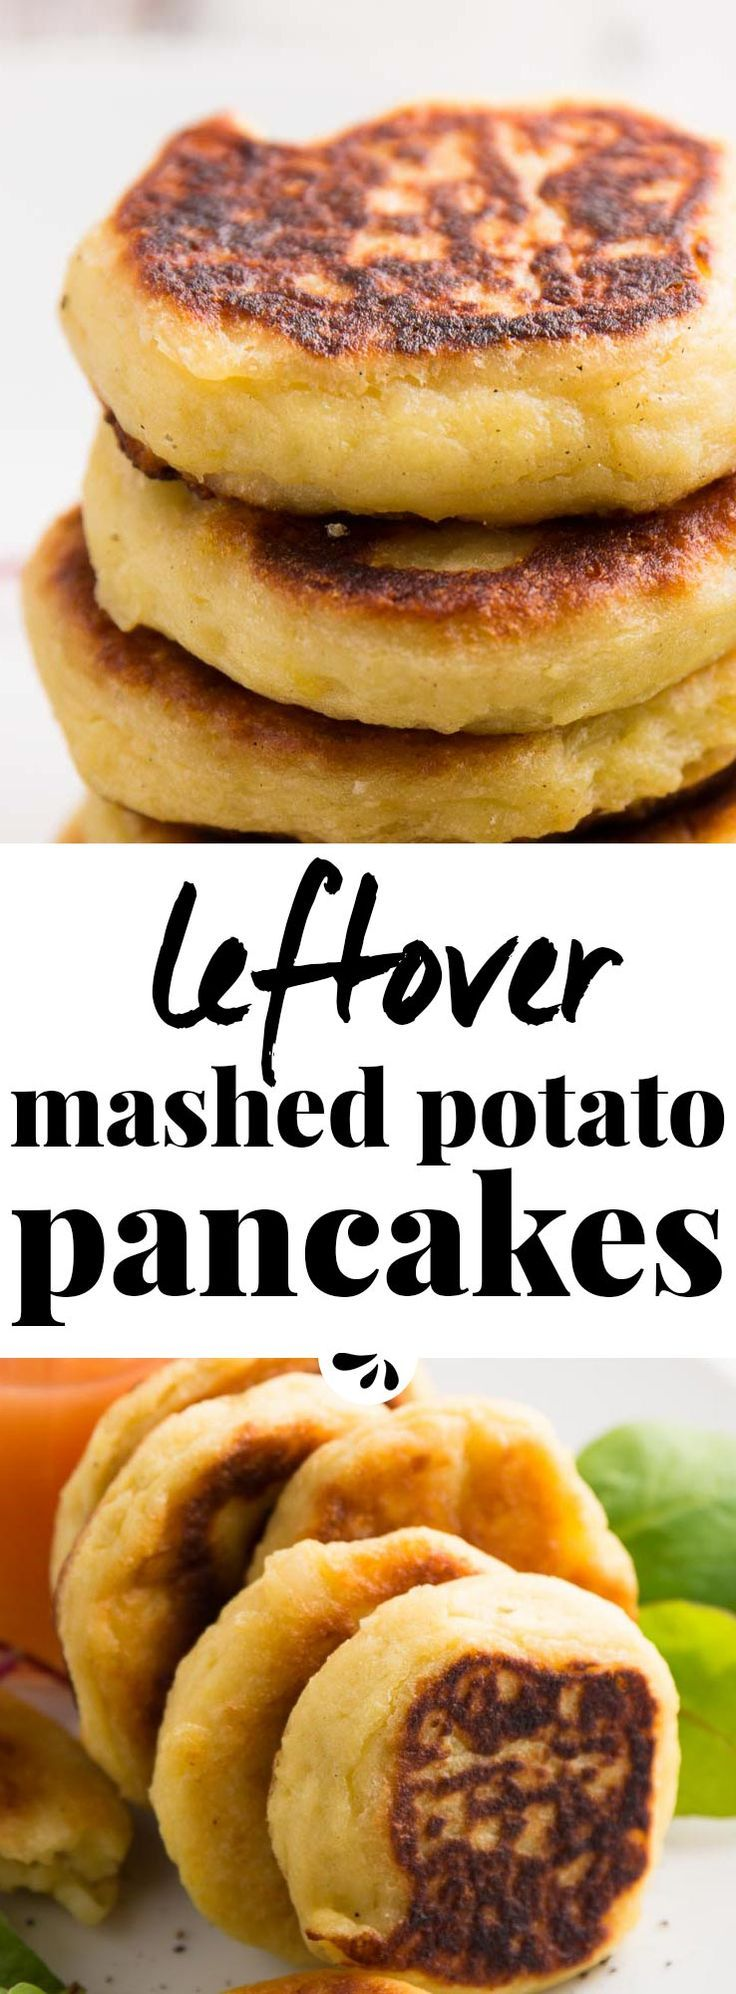 Best 25 mashed potato pancakes ideas on pinterest for What to make with leftover applesauce